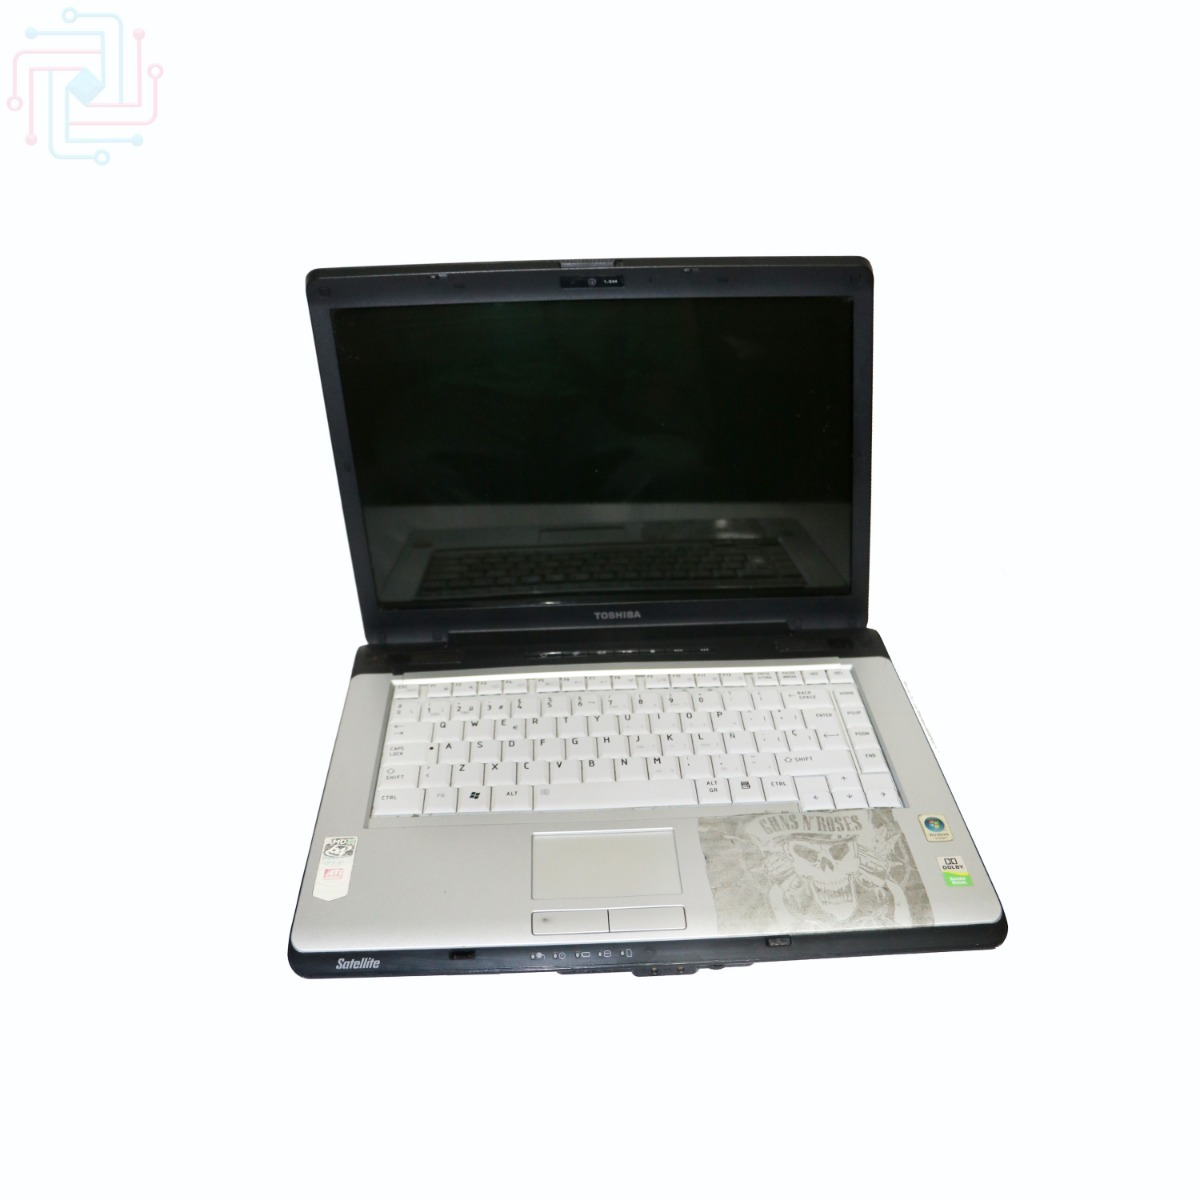 TOSHIBA SATELLITE A215-SP6806 DRIVER DOWNLOAD